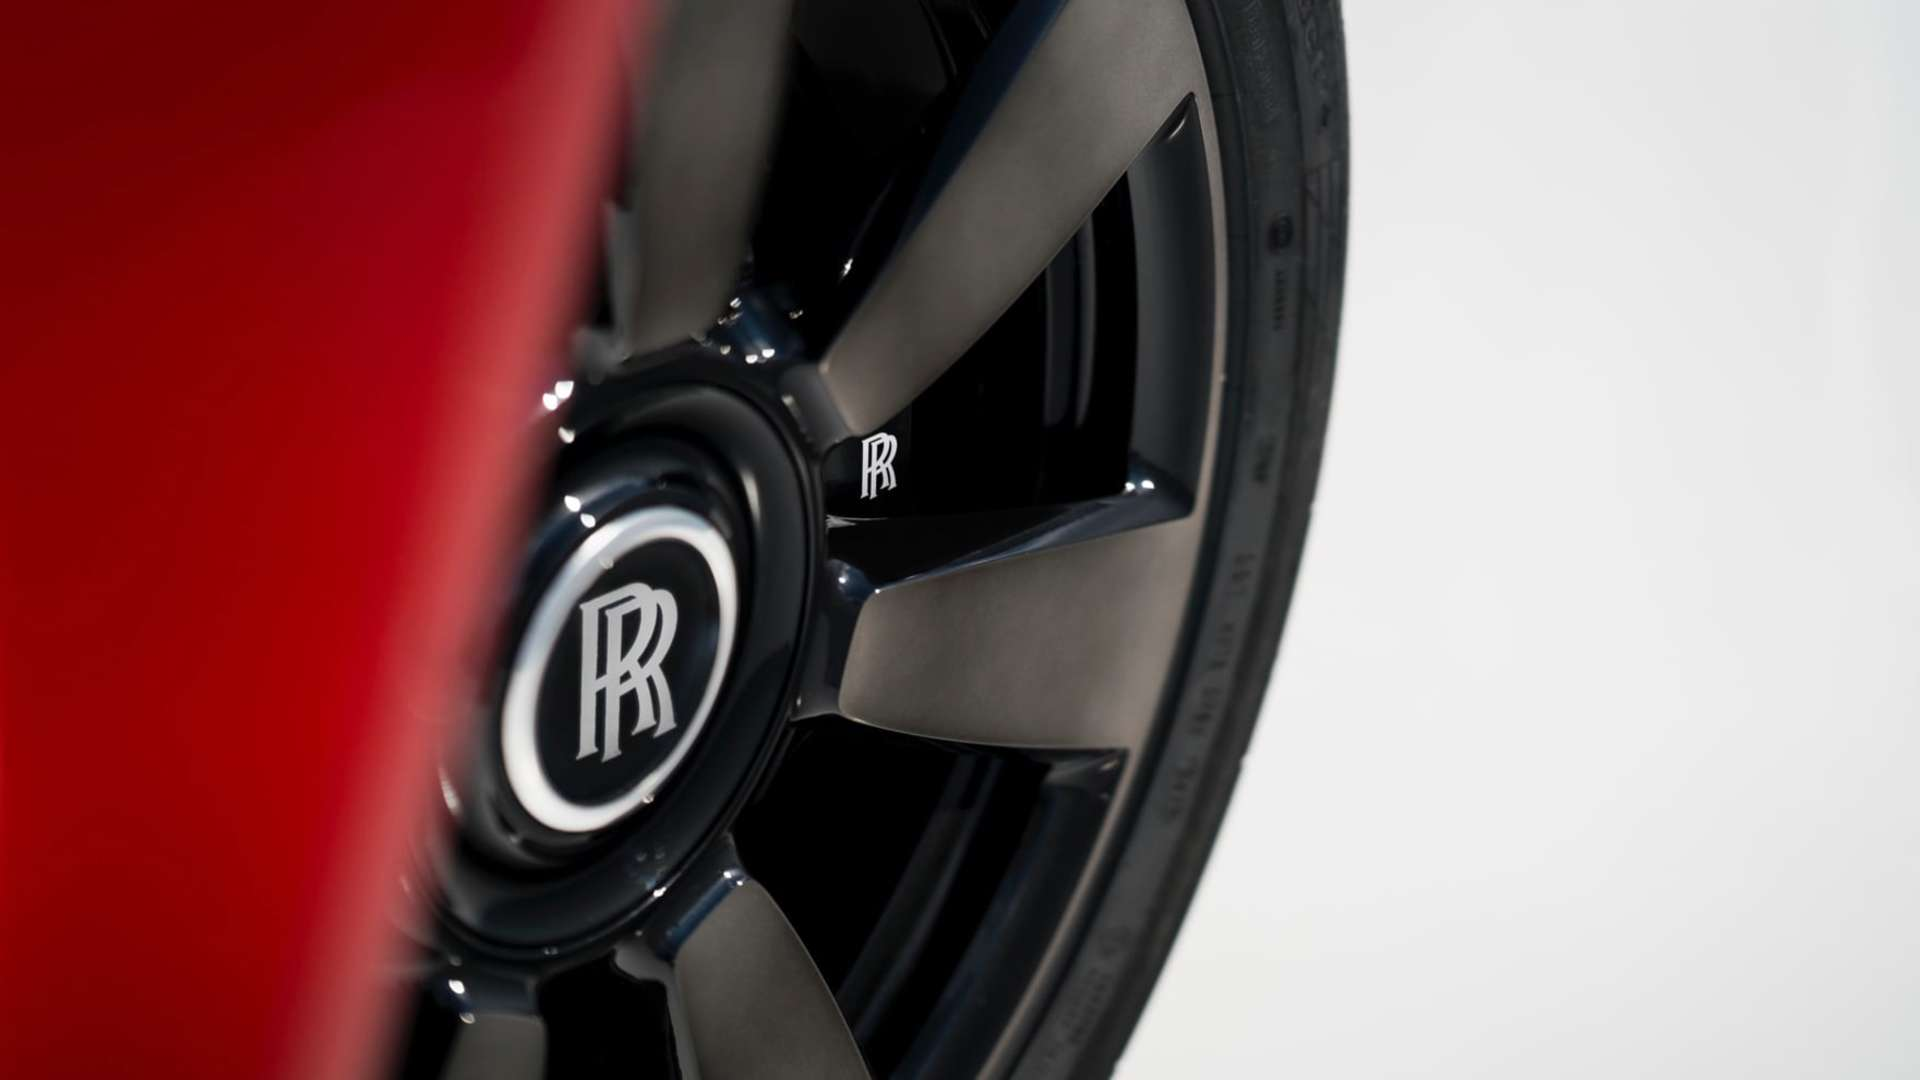 A close up of the wheels of a Rolls-Royce Cullinan motor car